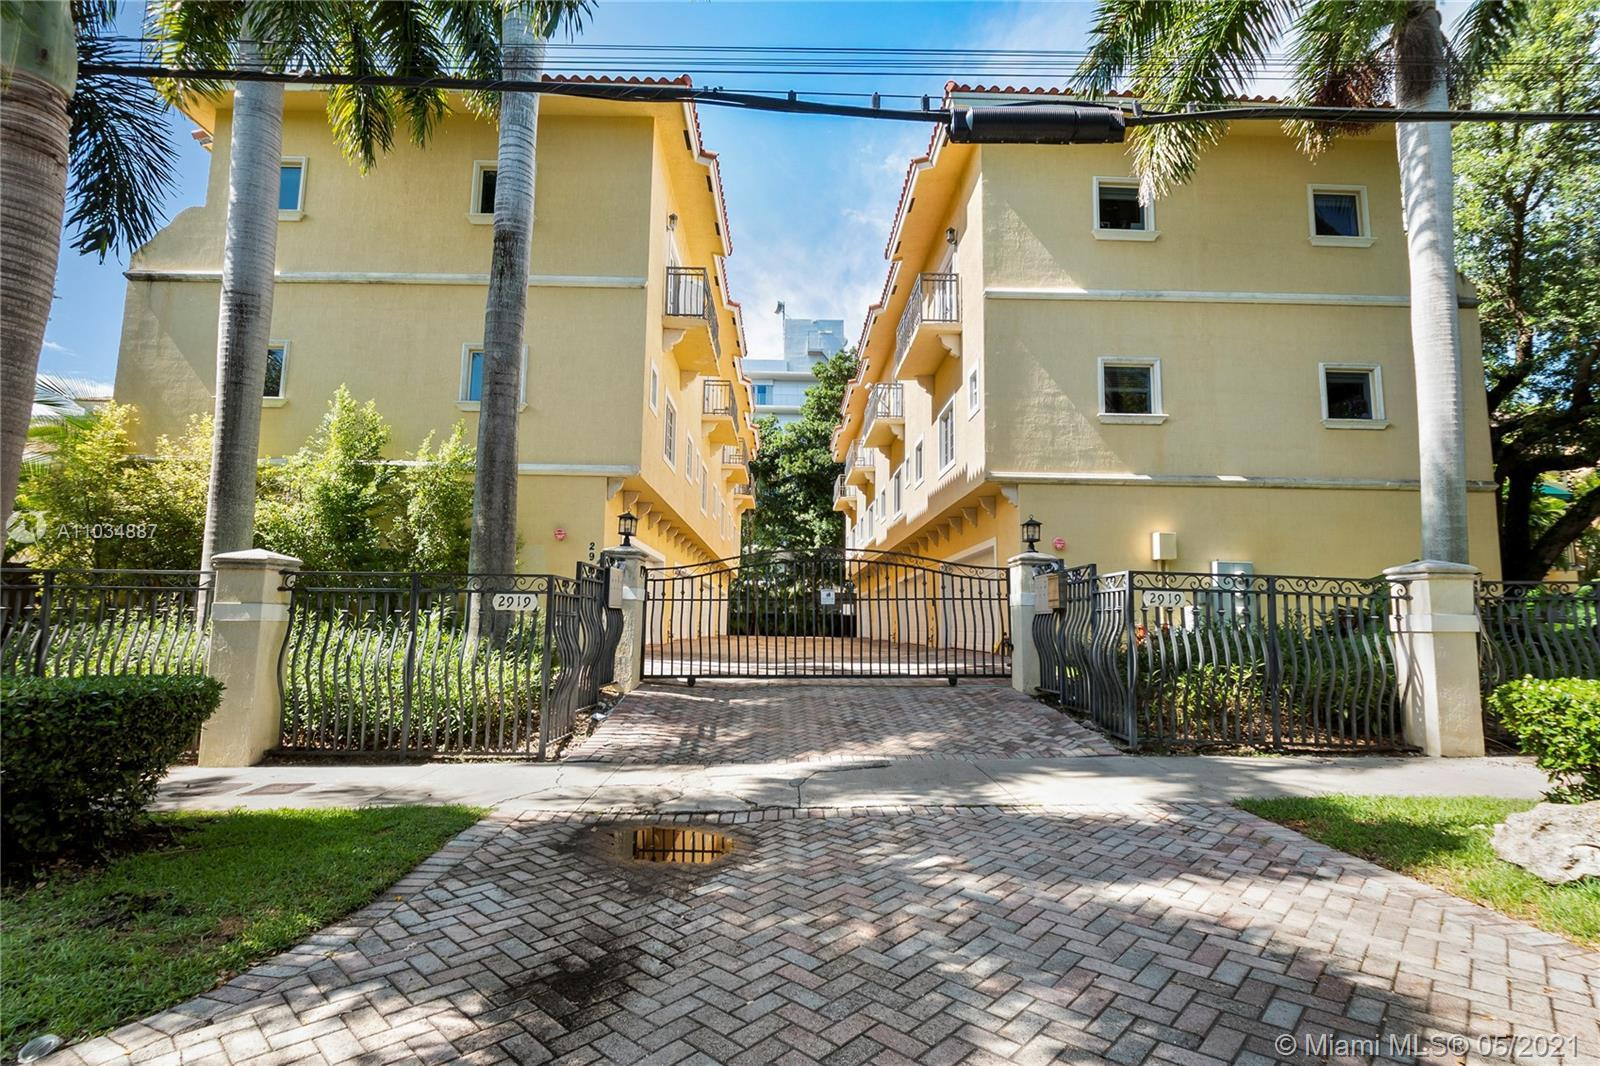 This is a gorgeous, tri-level townhome, just a short walk from Coconut Grove village with incredible